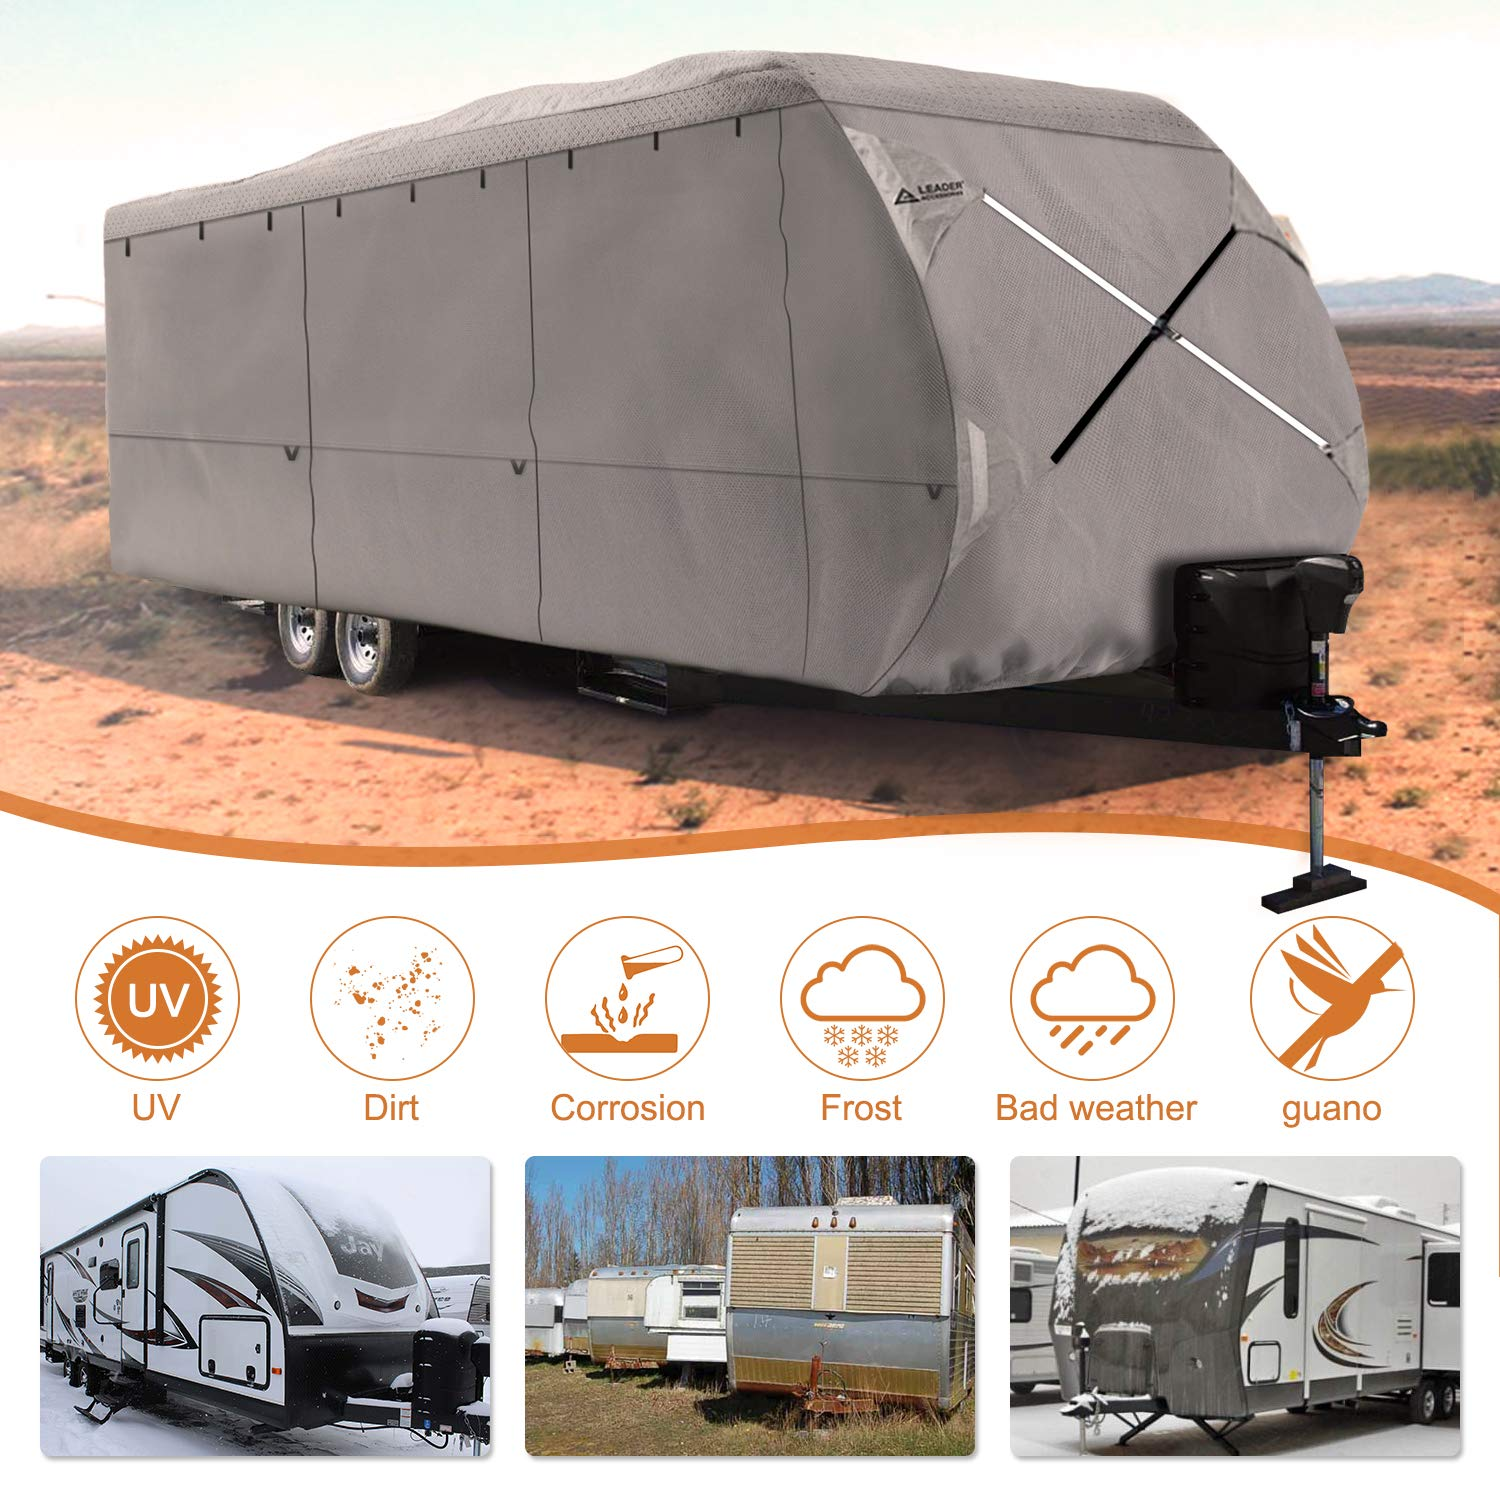 Leader Accessories Travel Trailer RV cover (4 Layer Top/Grey, Fits 27'-30') by Leader Accessories (Image #5)